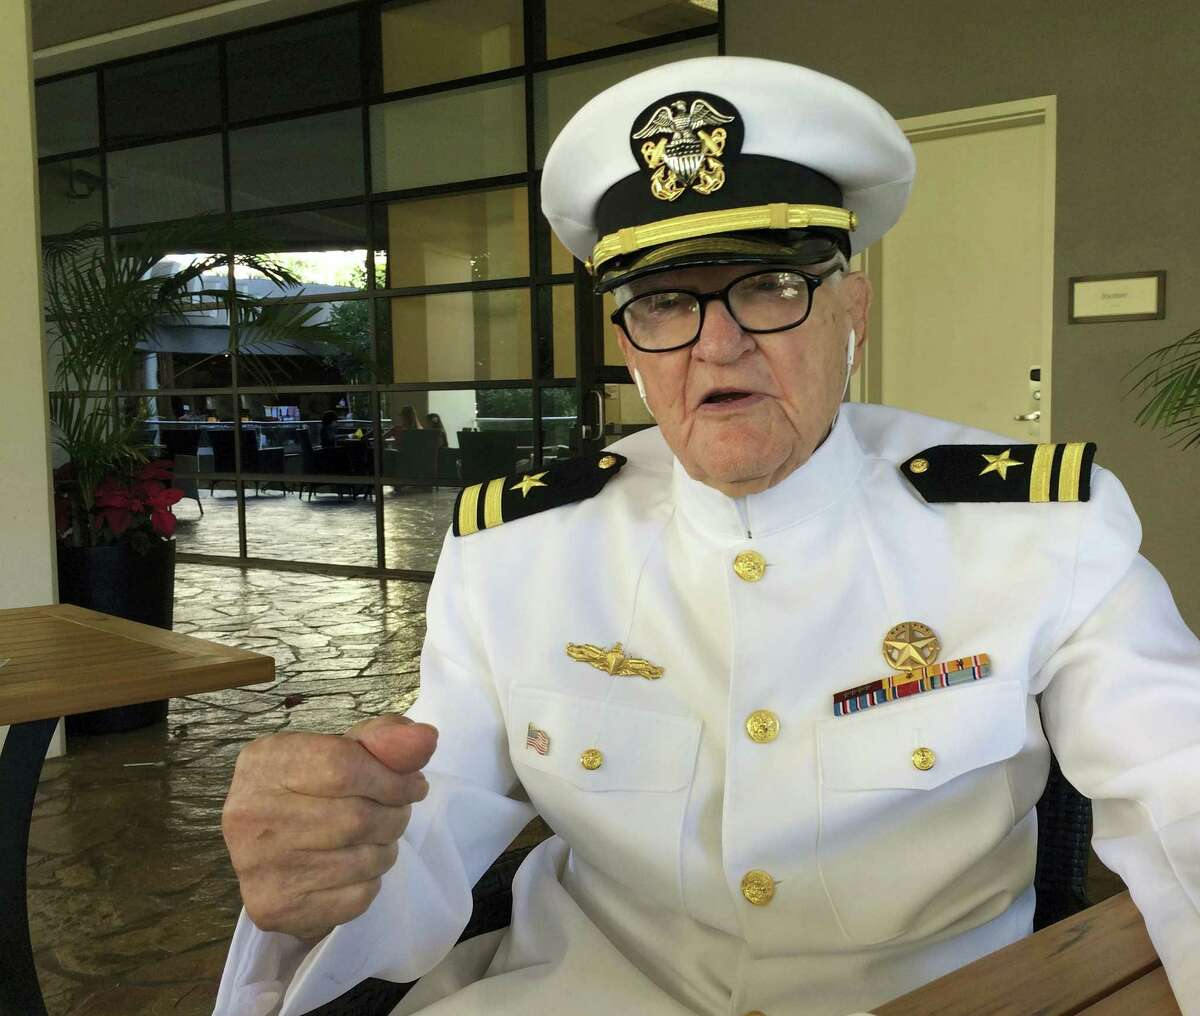 In this Monday, Dec. 5, 2016, photo, Jim Downing, wearing a Navy uniform, answers questions during an interview in Honolulu. Downing is among a few dozen survivors of the Japanese attack on Pearl Harbor who plan to gather at the Hawaii naval base, Wednesday, Dec. 7, 2016, to remember those killed 75 years ago. Thousands of servicemen and women and members of the public are also expected to attend the ceremony.